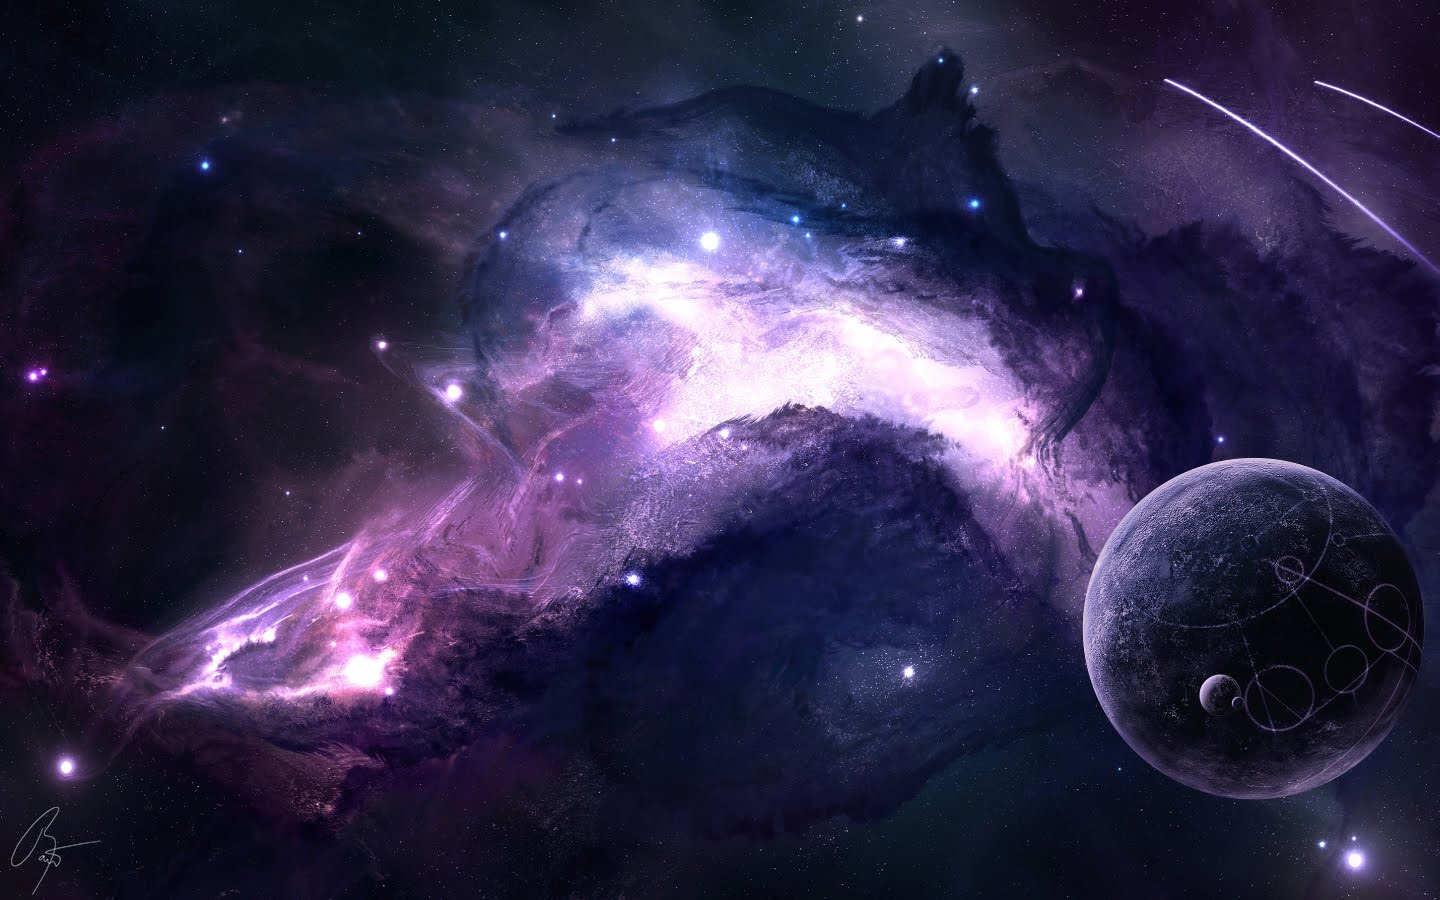 Space Background Images Download HD Wallpapers 1440x900